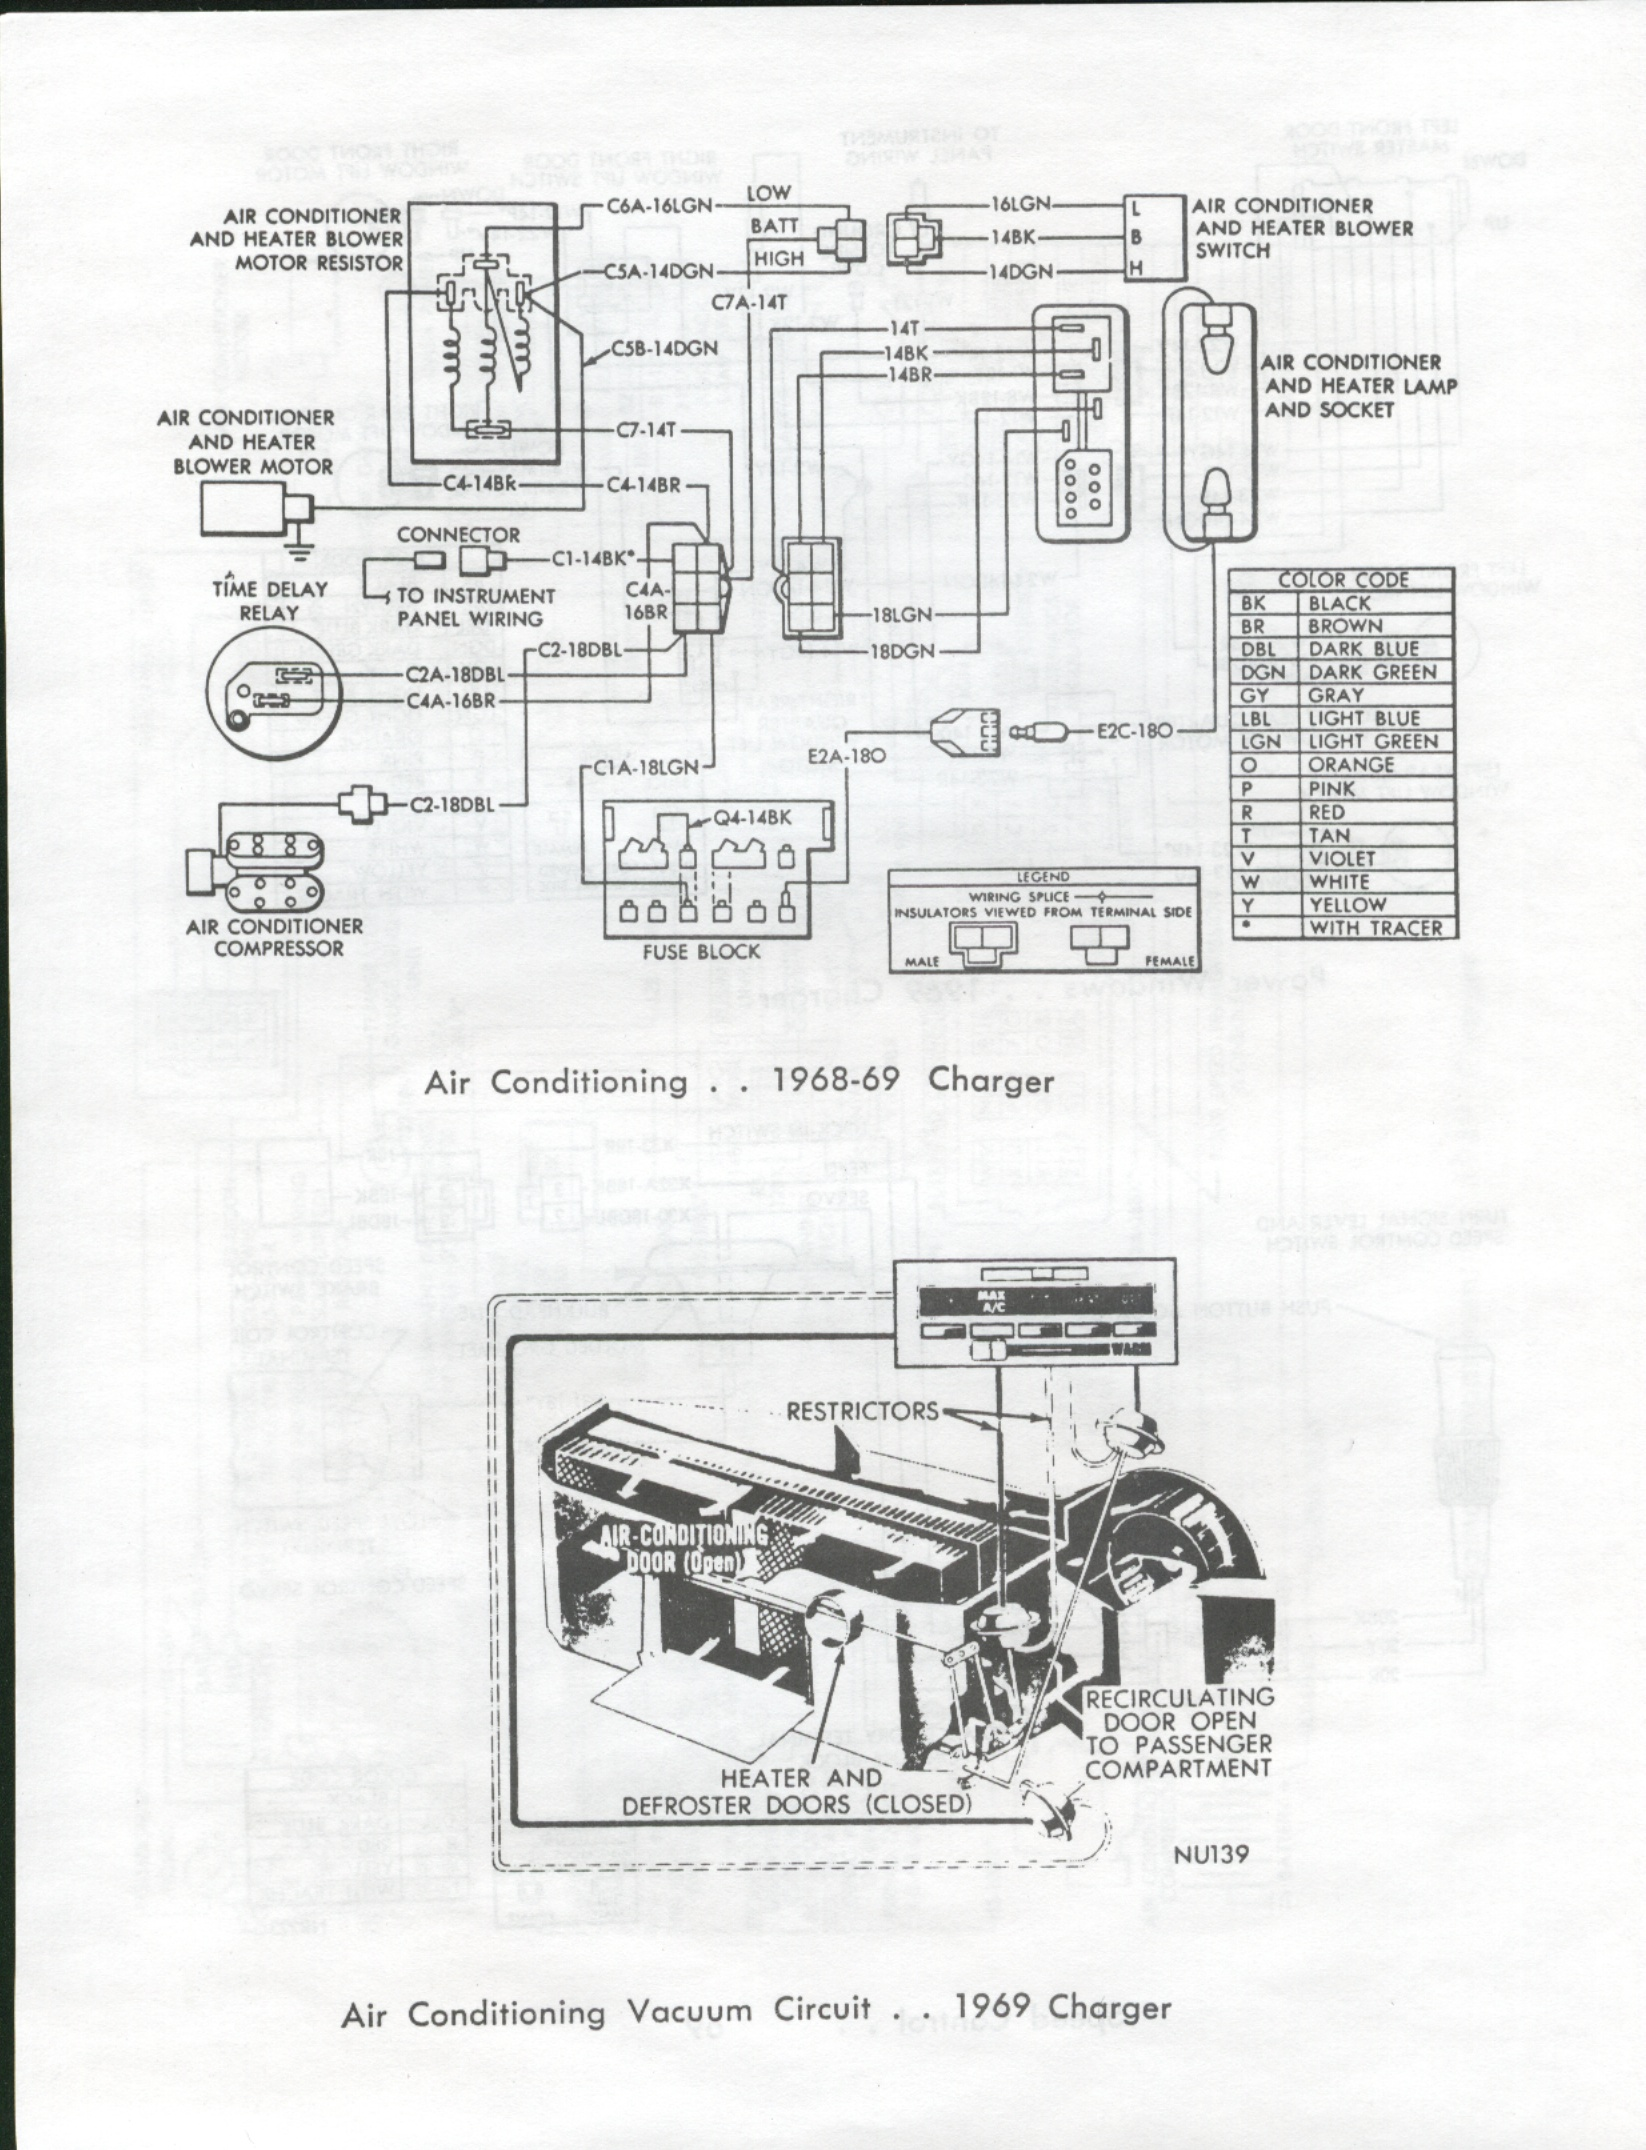 hight resolution of 69 gto wiring diagram blower circuit diagram symbols u2022 wiring diagram pontiac gto judge blower